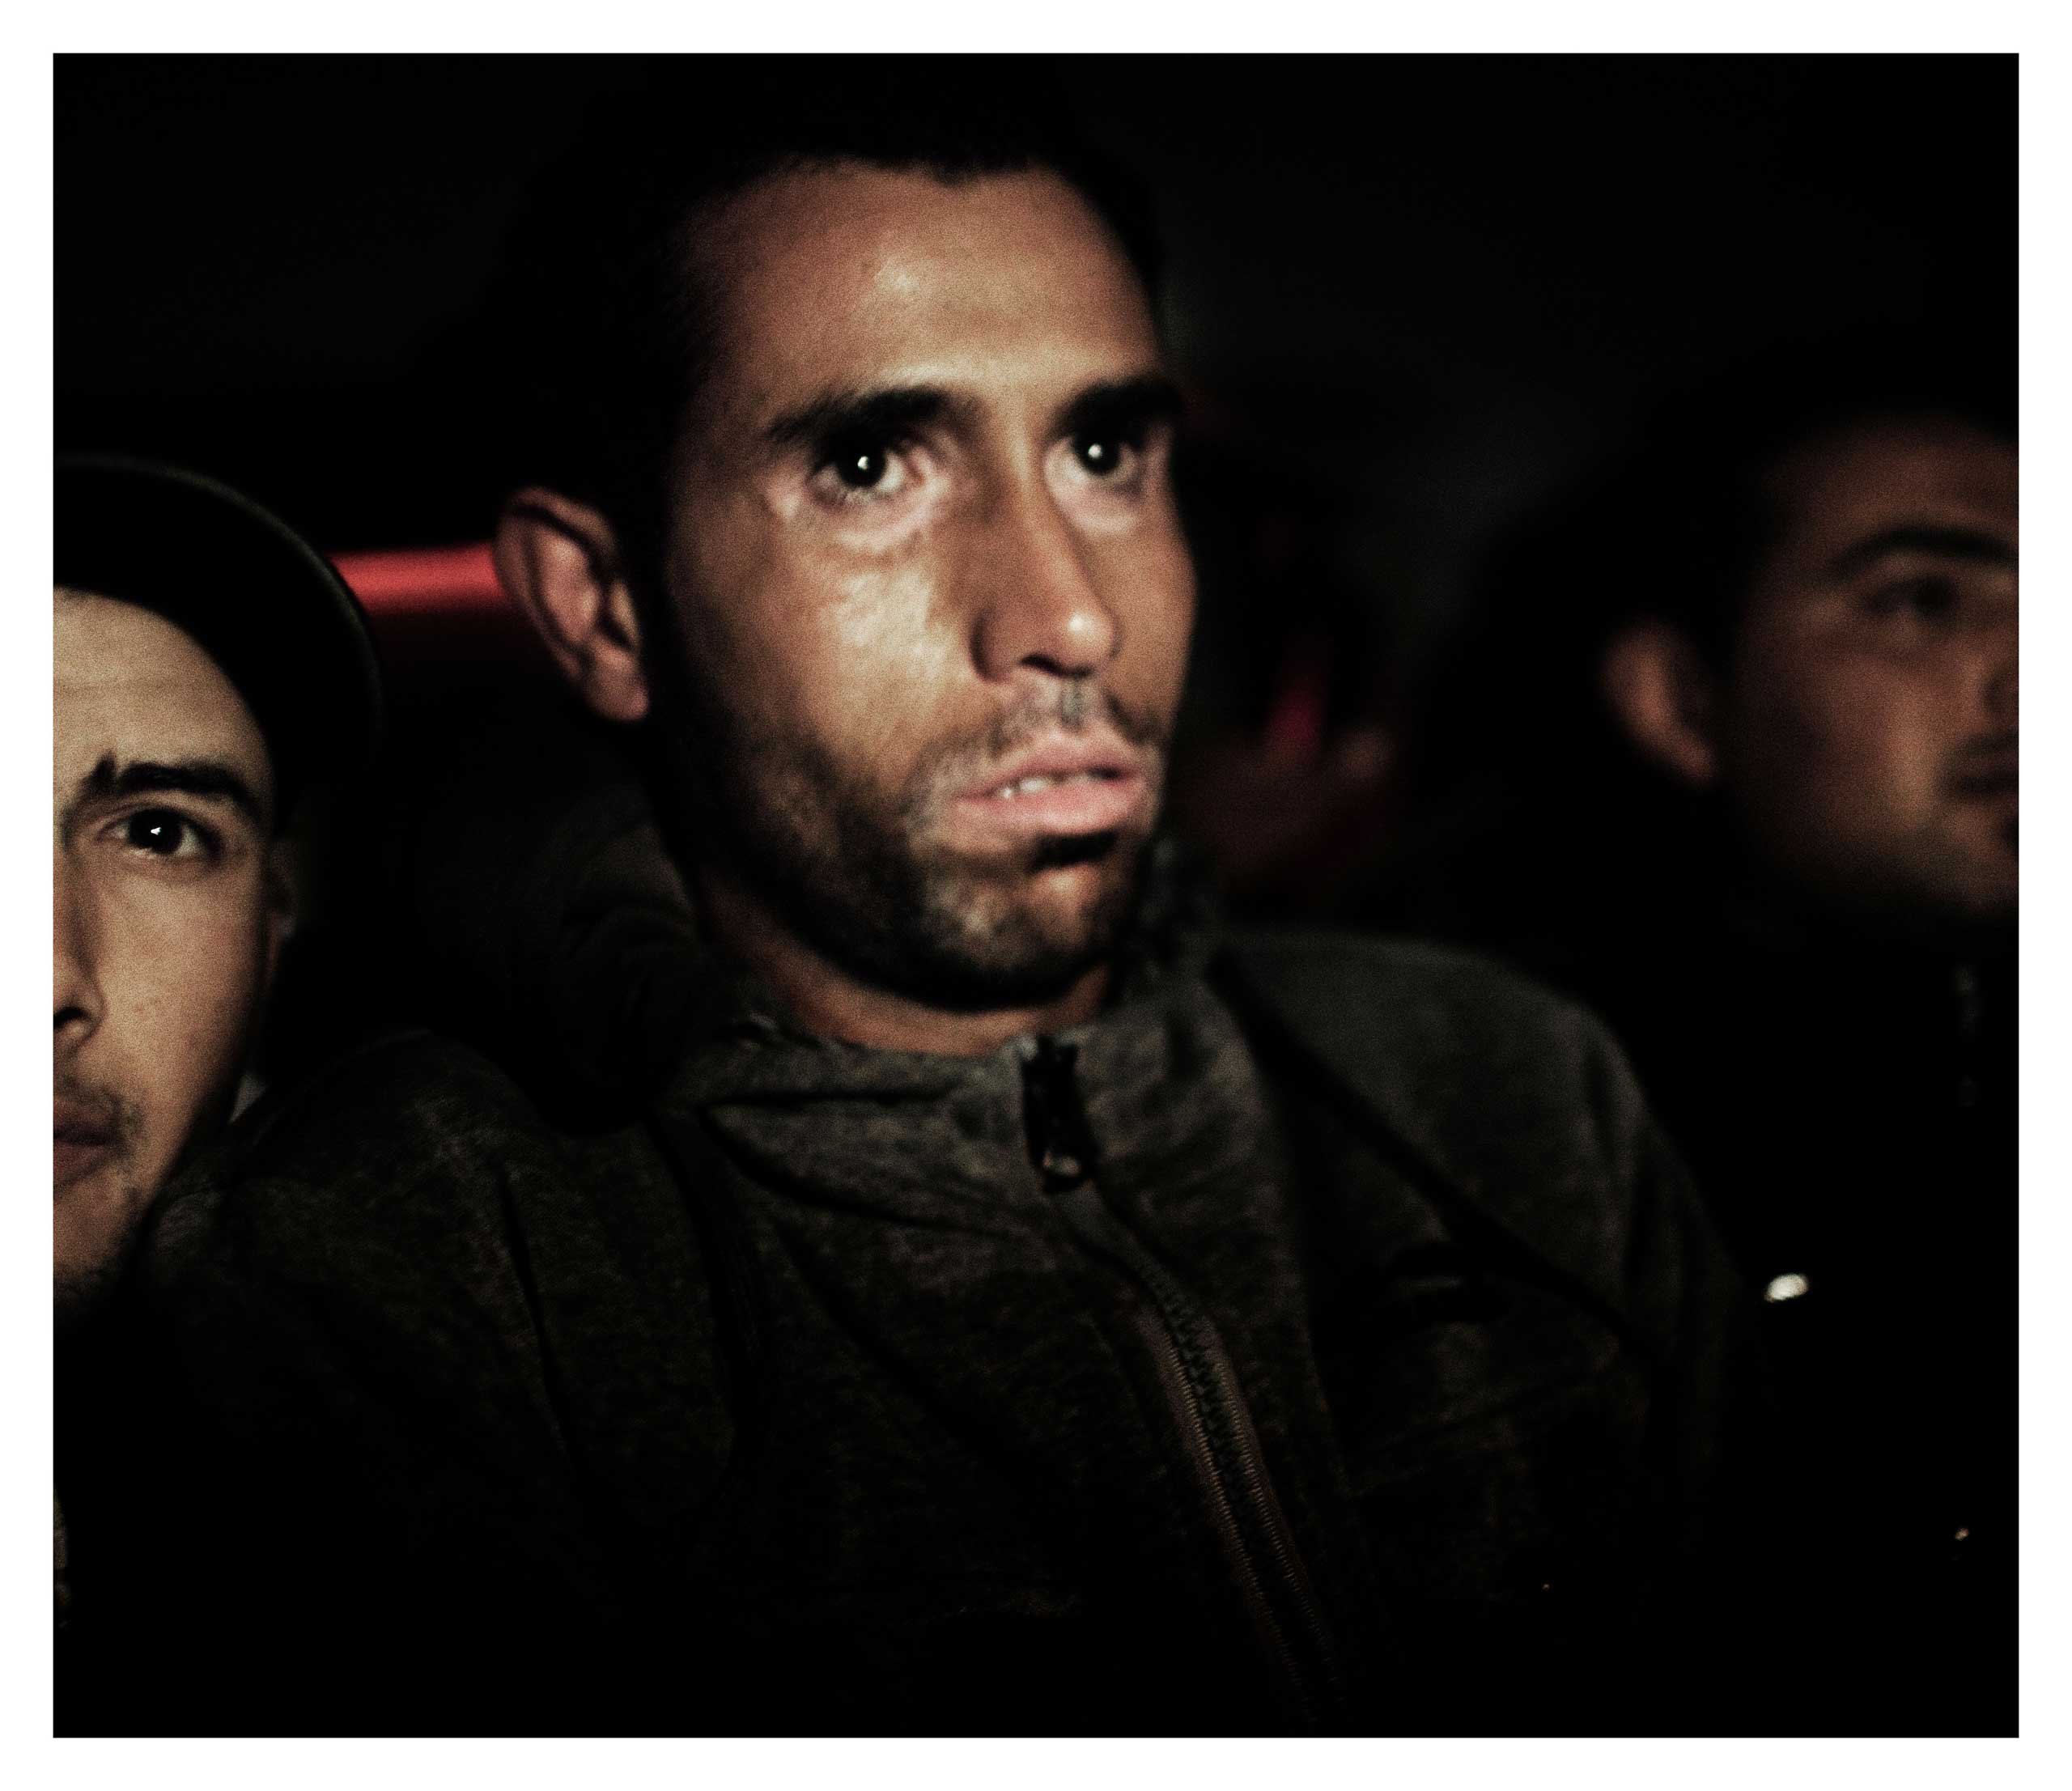 Migrants get ready to board the boat to reach Italy from the coast of Zarzis, Tunisia, March 13, 2011.